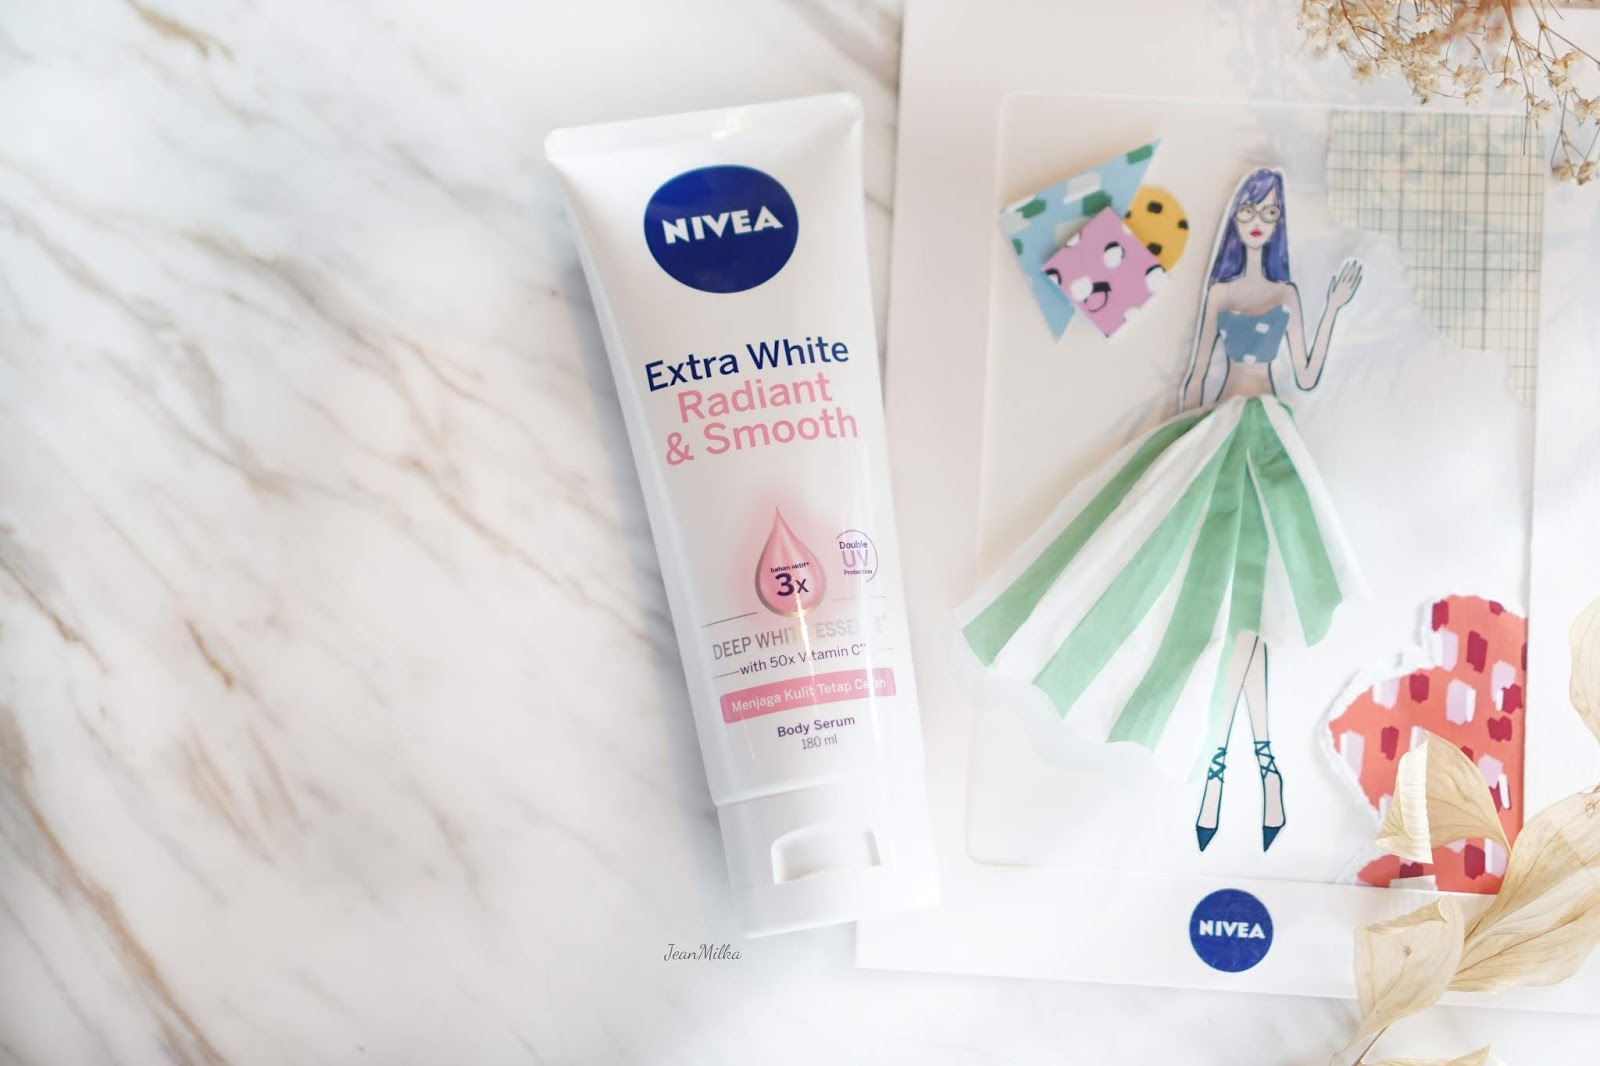 nivea, nivea indonesia, nivea body serum, lotion, body lotion, body serum, nivea body lotion, review, review nivea